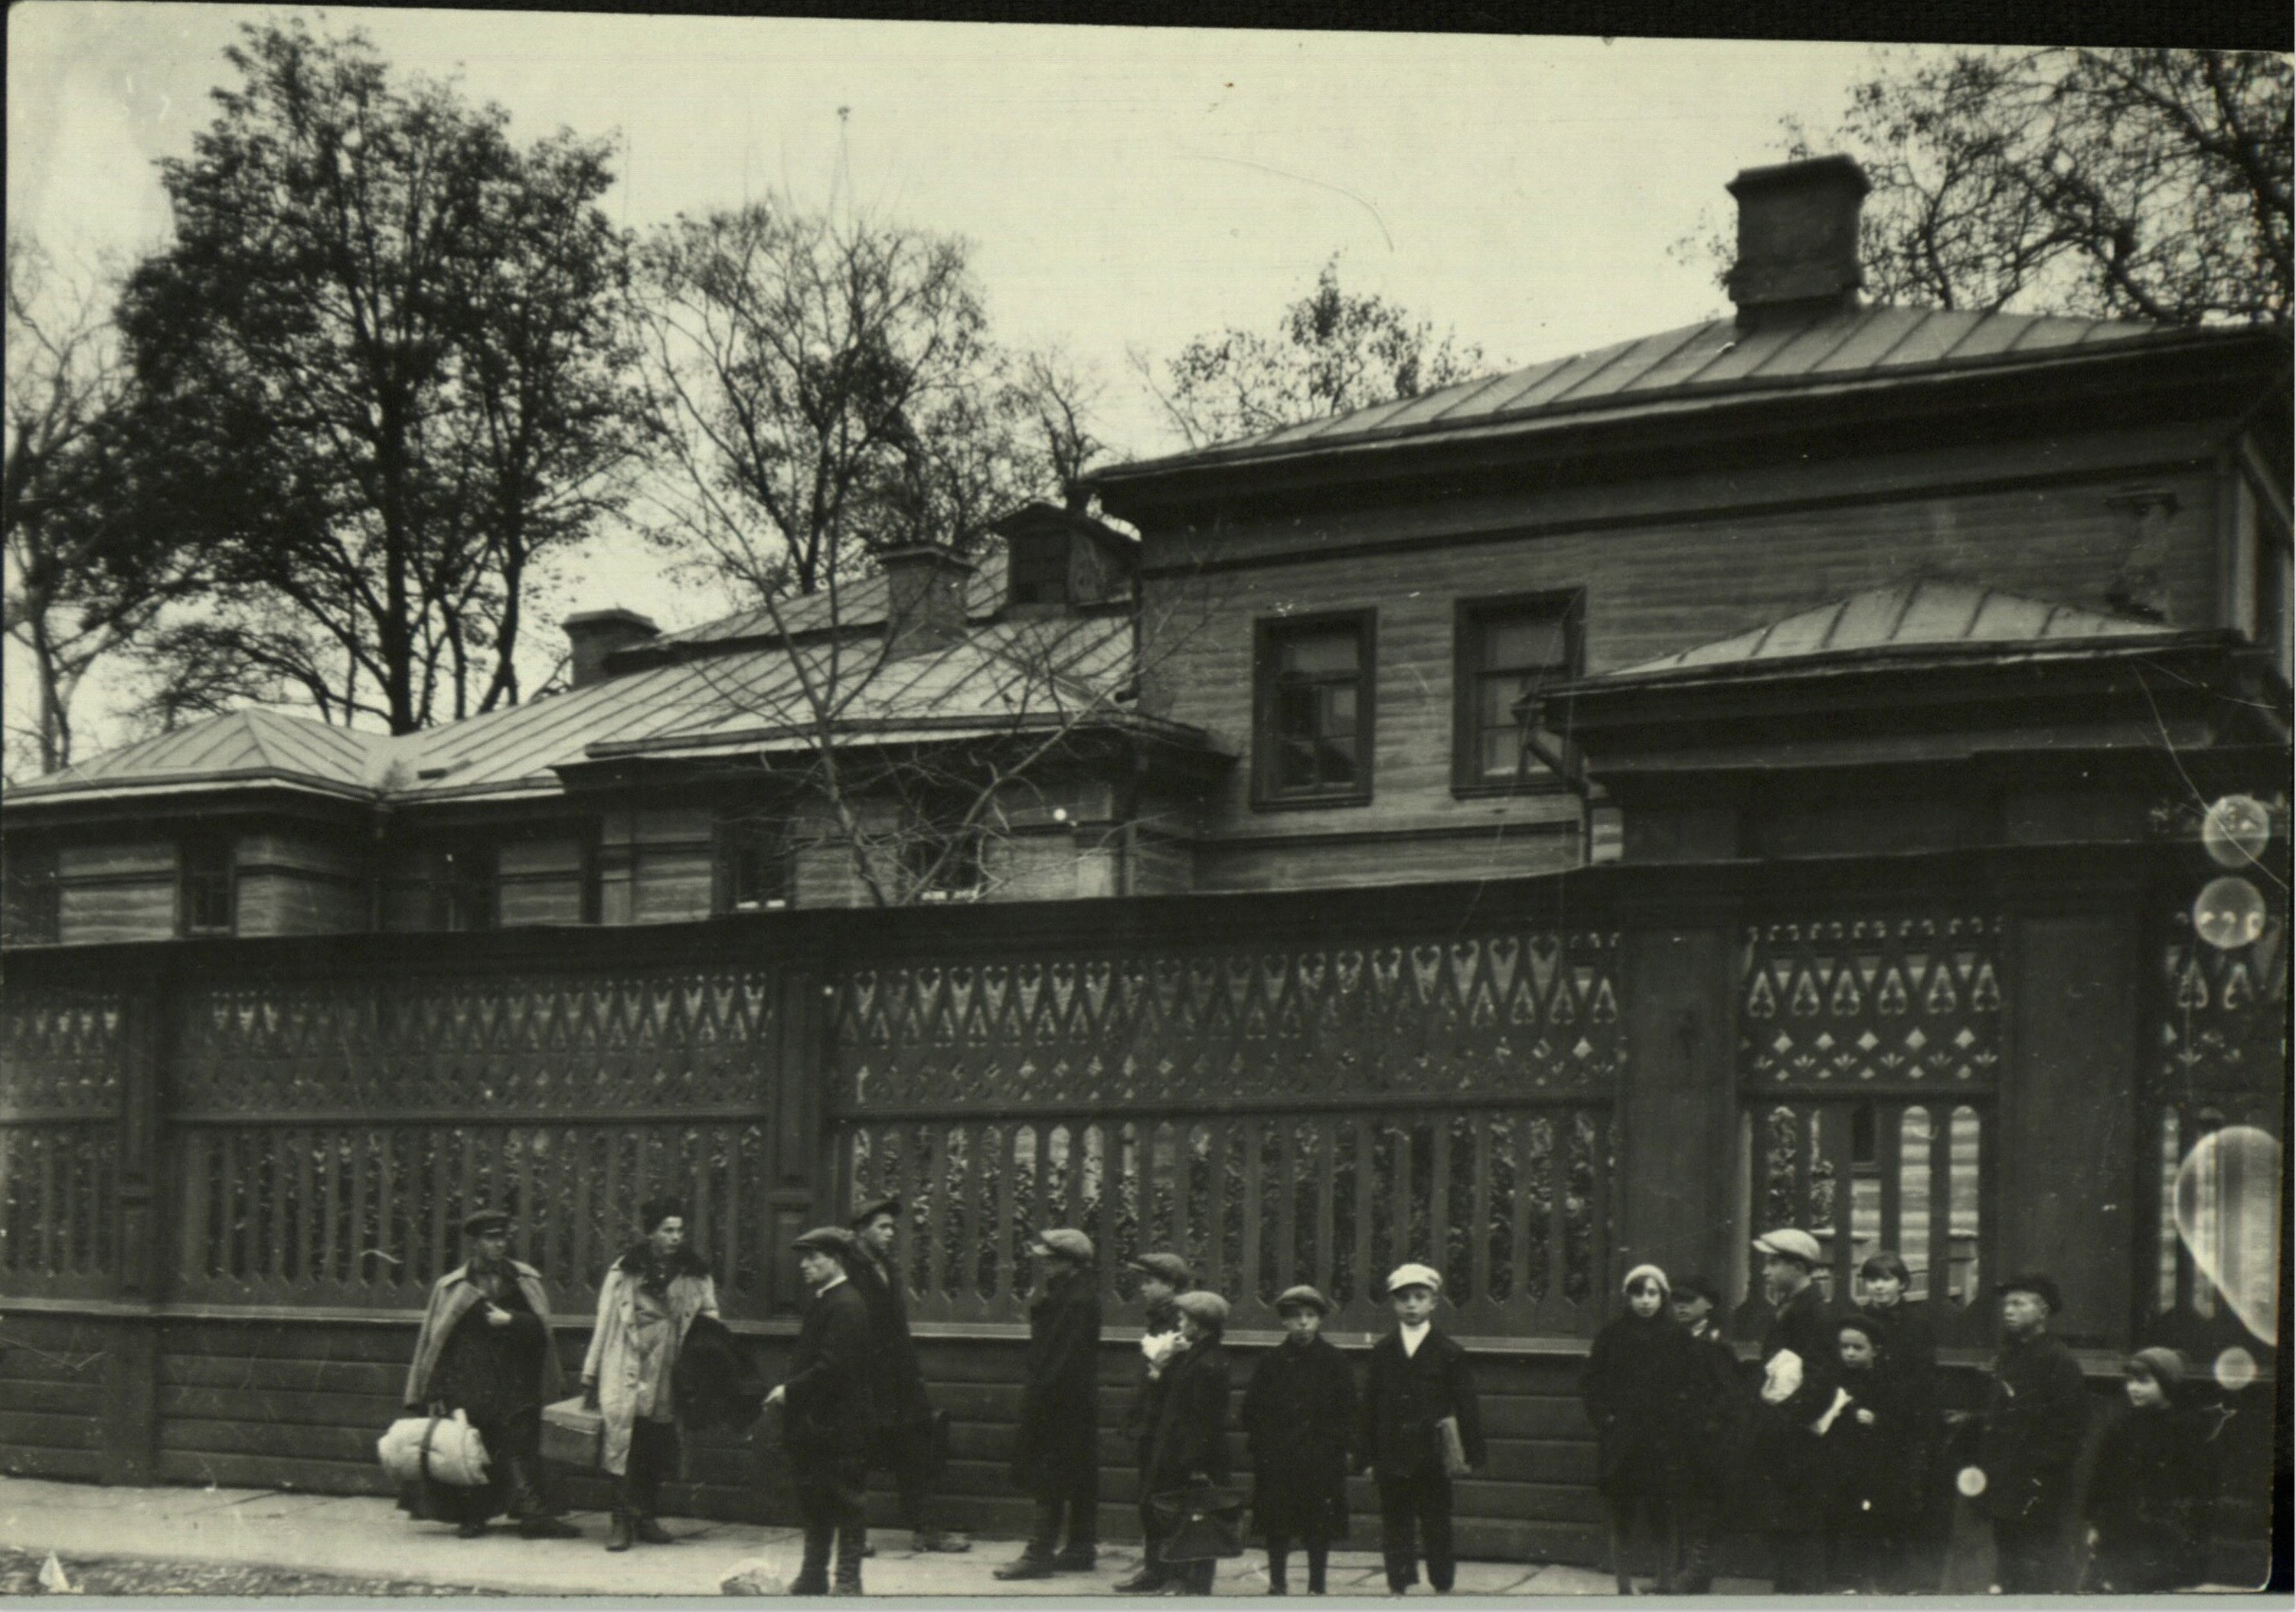 Margaret Bourke-White, Family mansion of Russian novelist Leo Tolstoy where school children are gathered on sidewalk outside the grounds (Iasnaia Polania, 1931)